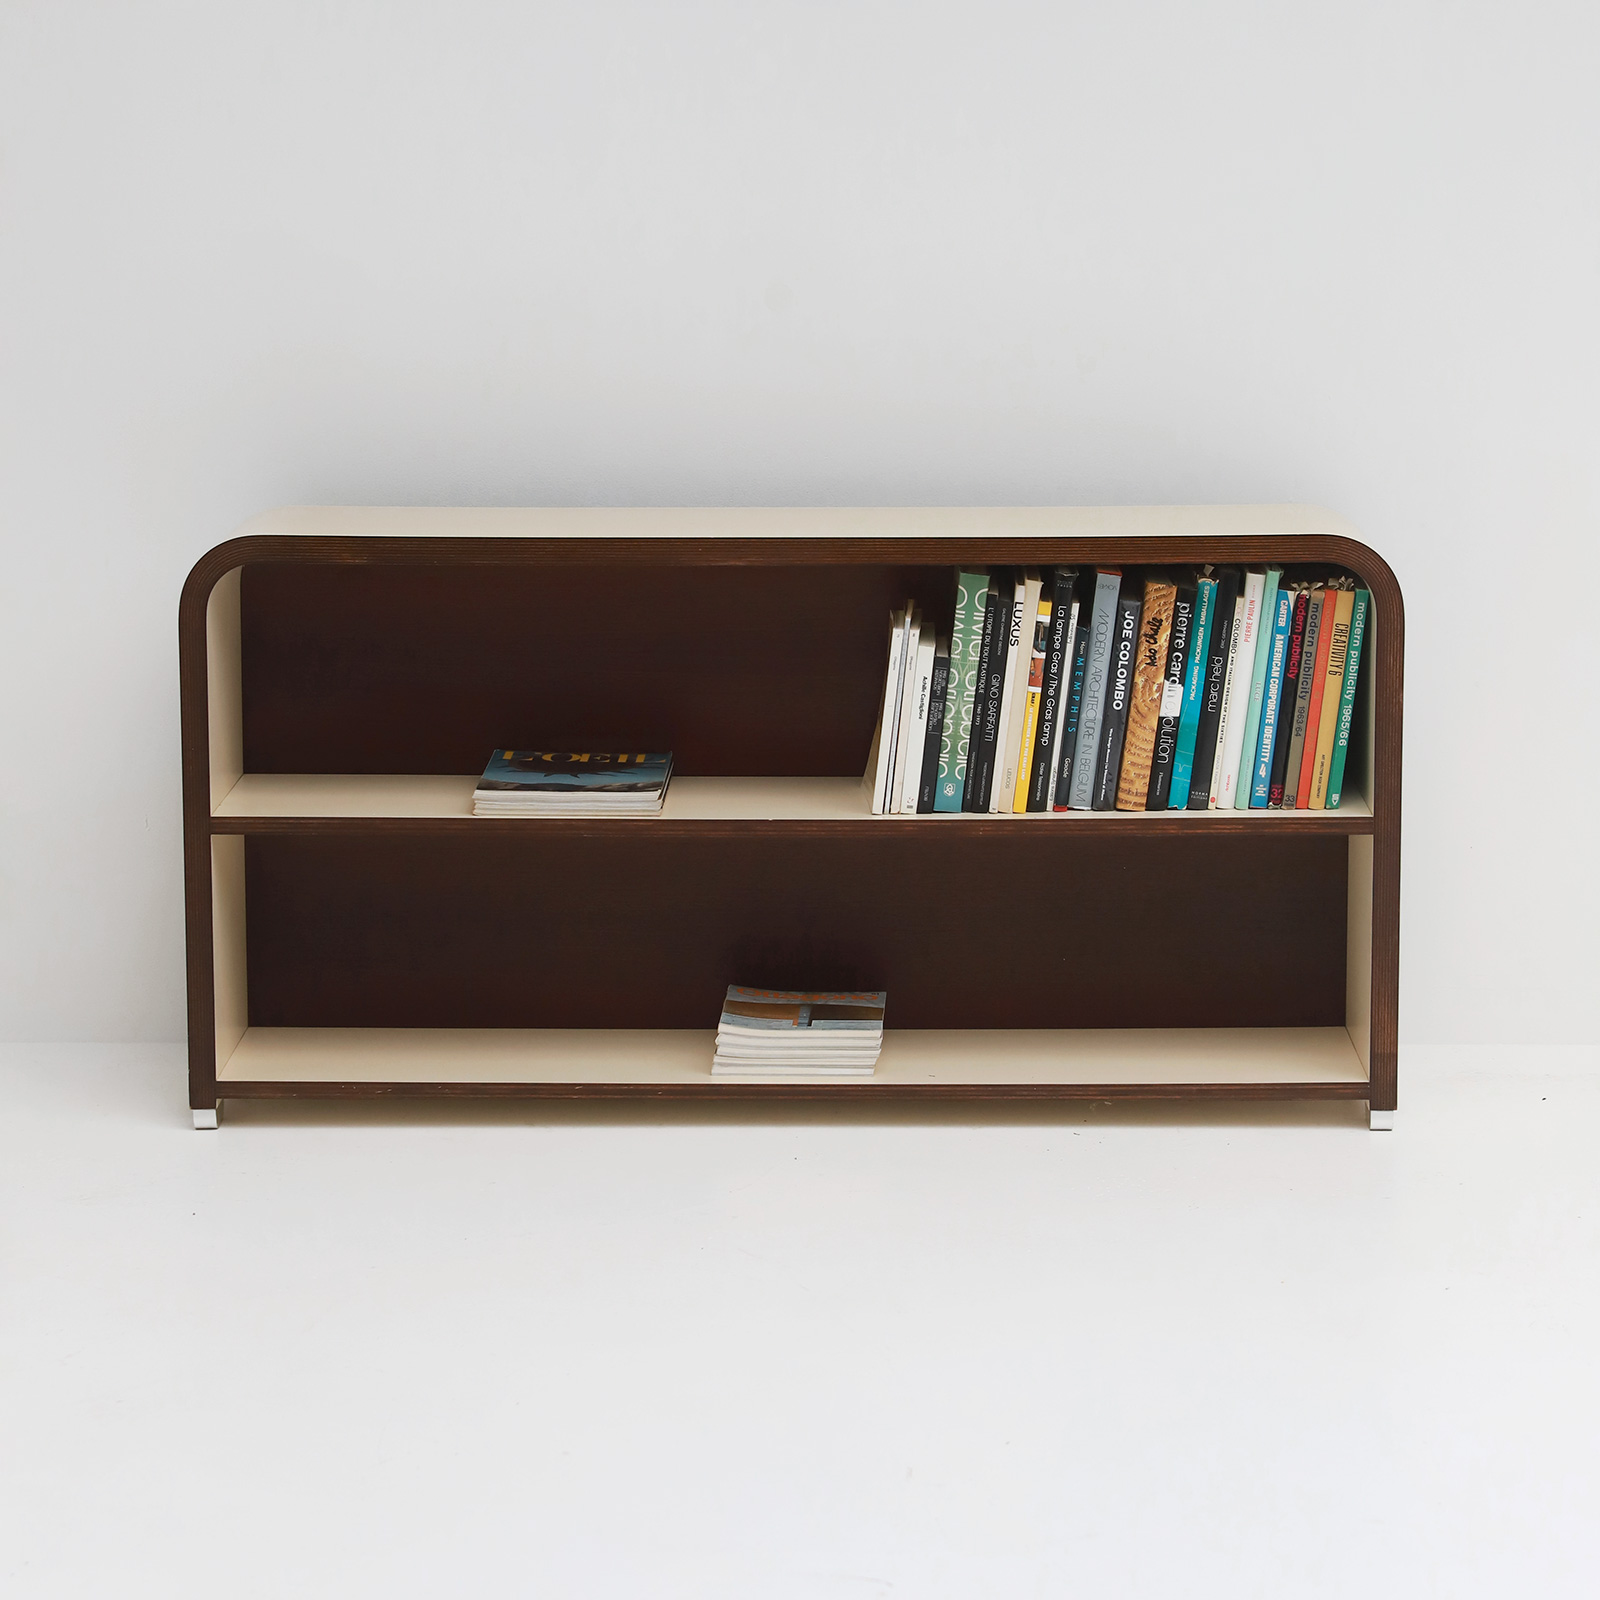 Jules Wabbes bookcase 1965